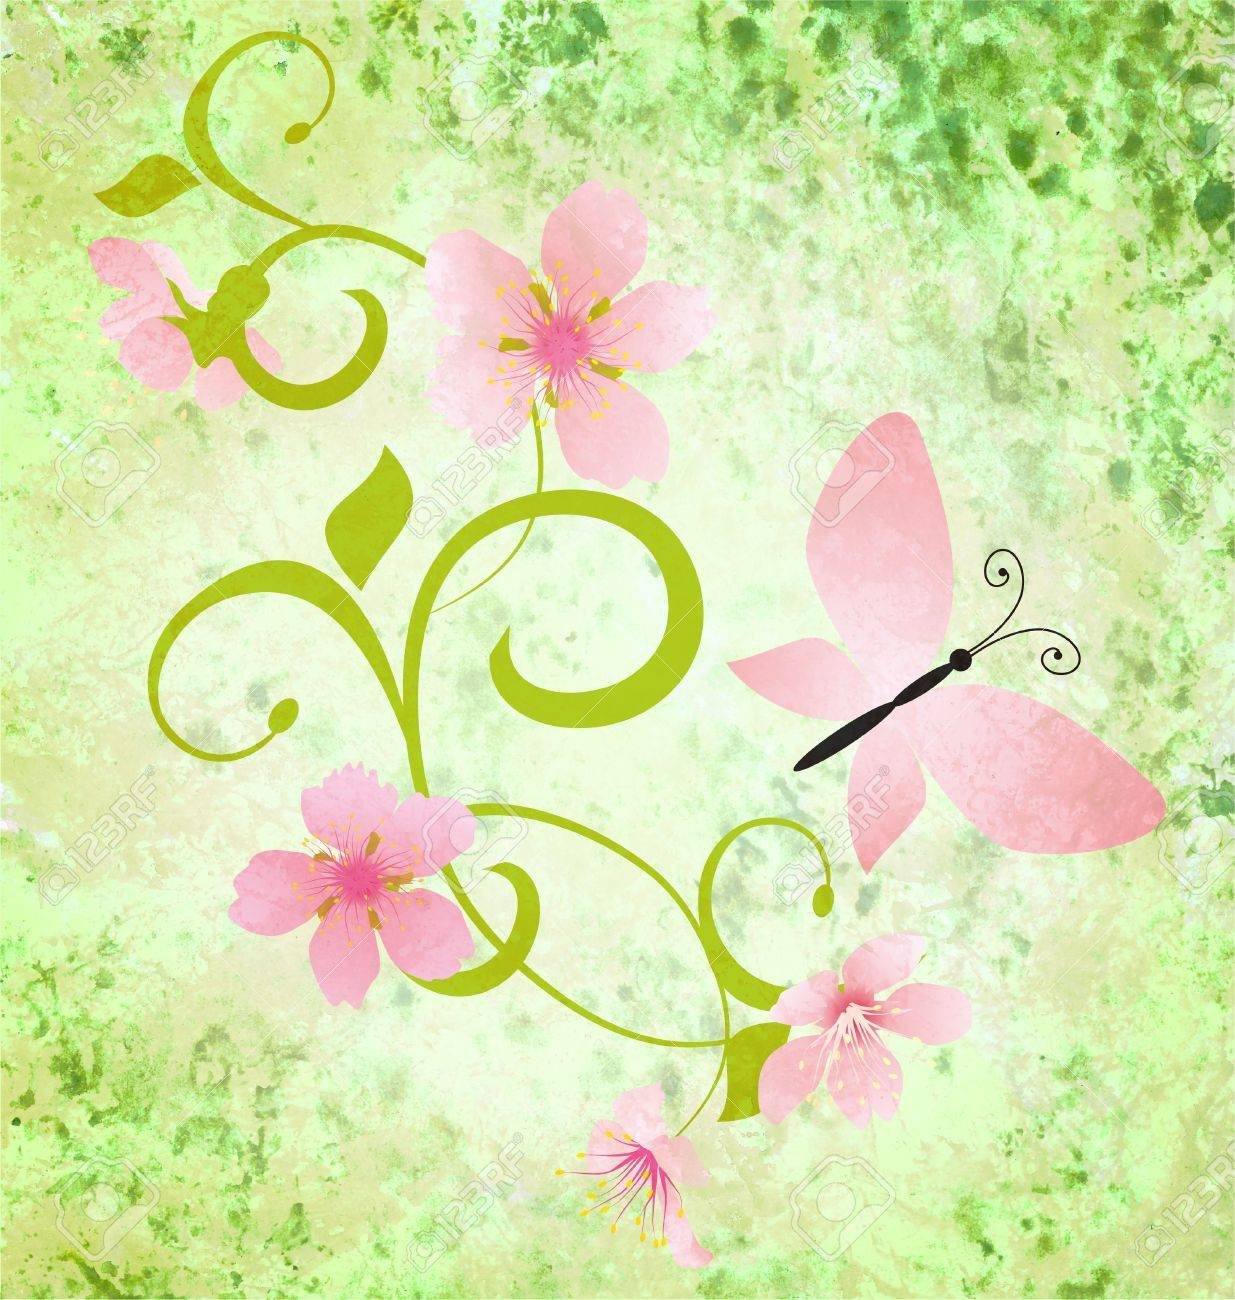 spring green grunge background with pink flowers and butterflies Stock Photo - 14821186